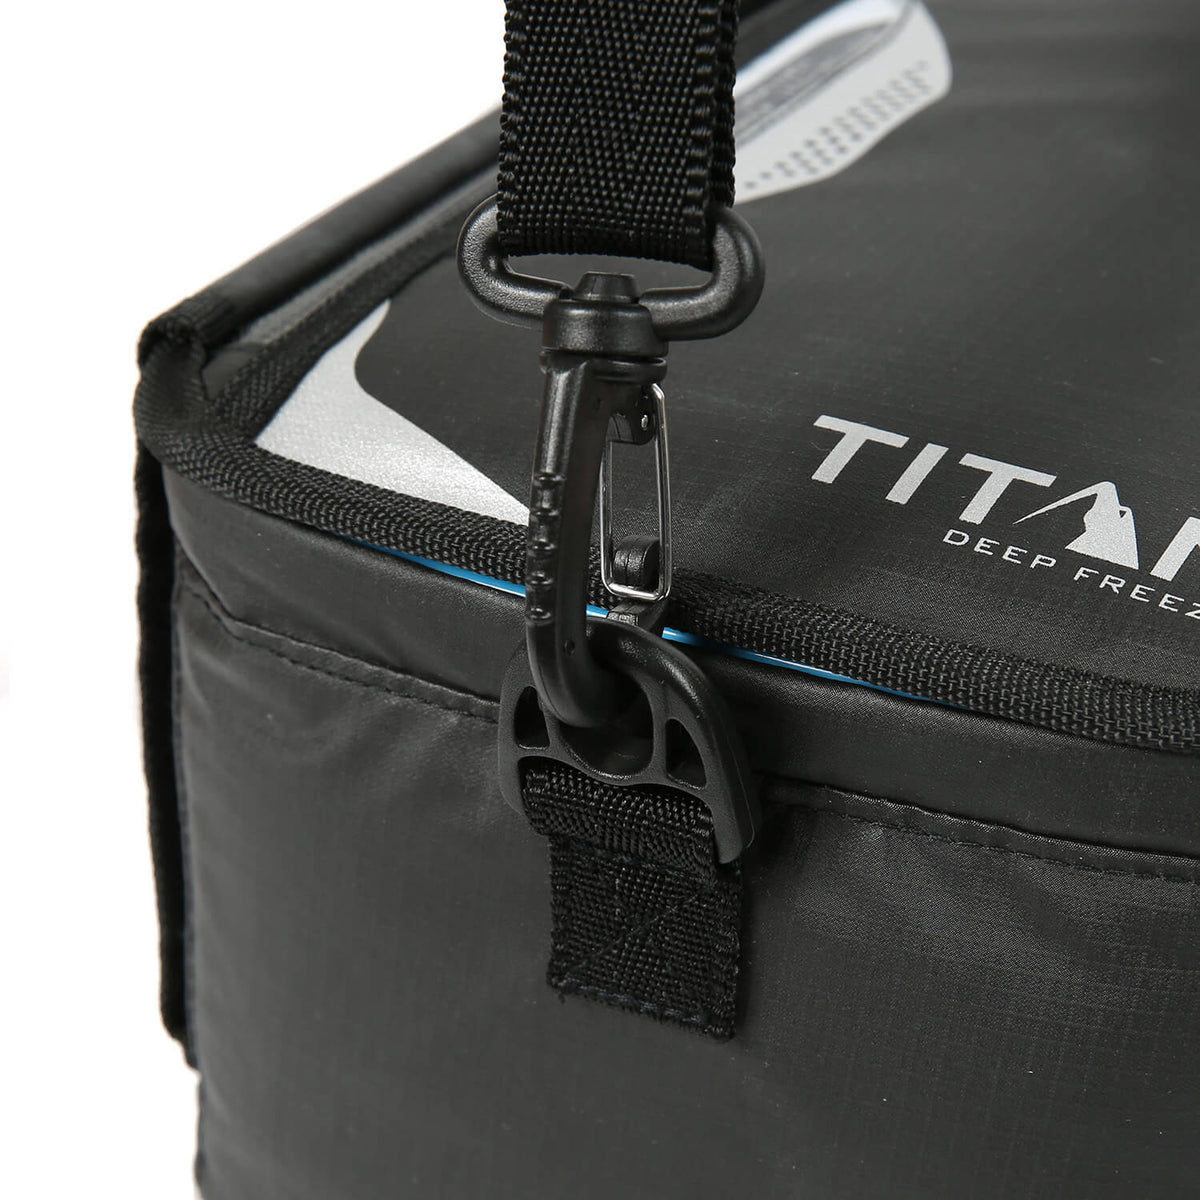 Titan Deep Freeze® Zipperless™ Lunch Box - Hook detail